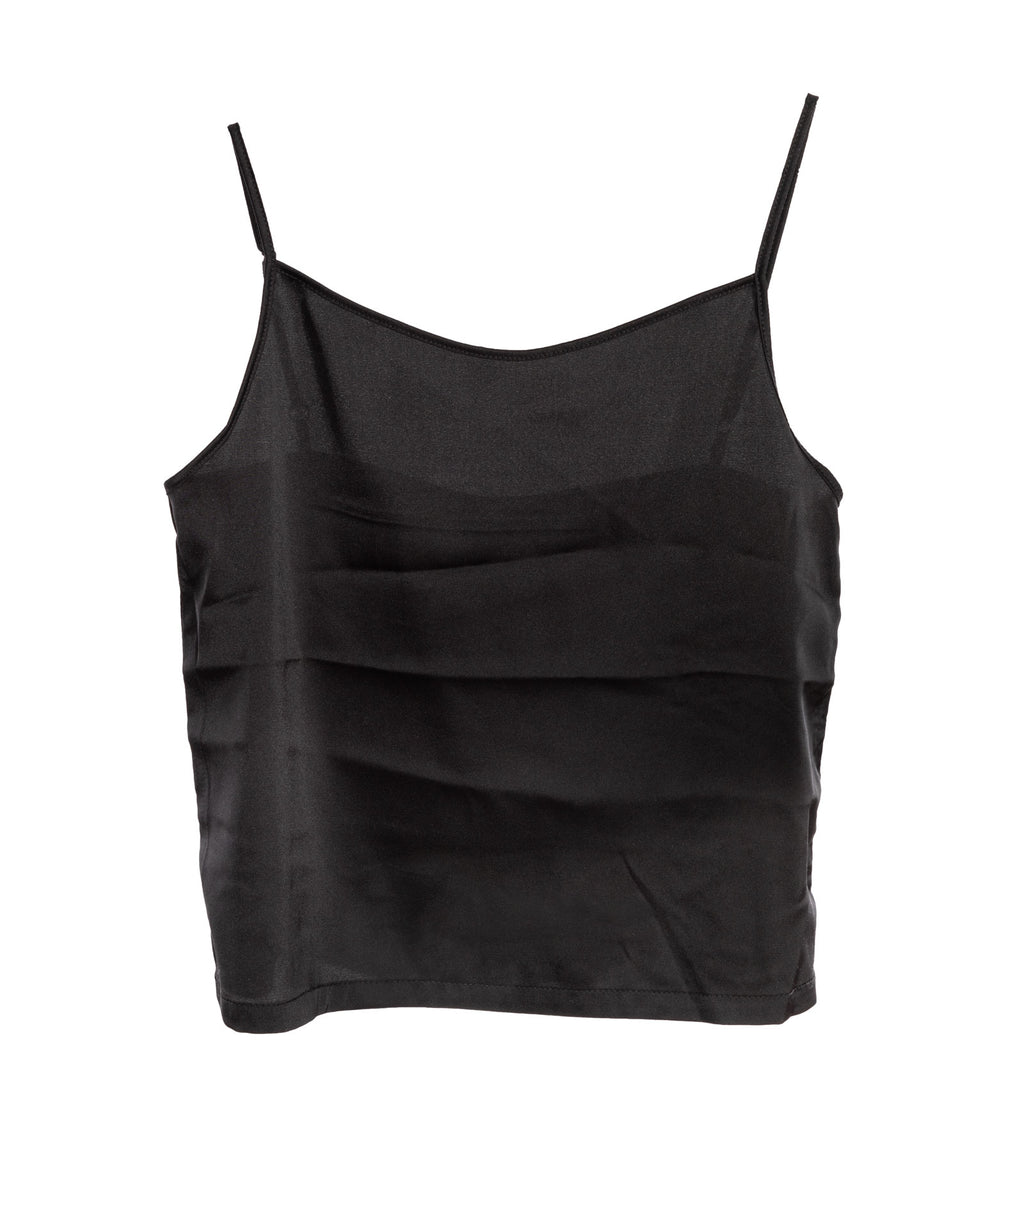 Katie J NYC Girls Black Silk Cami